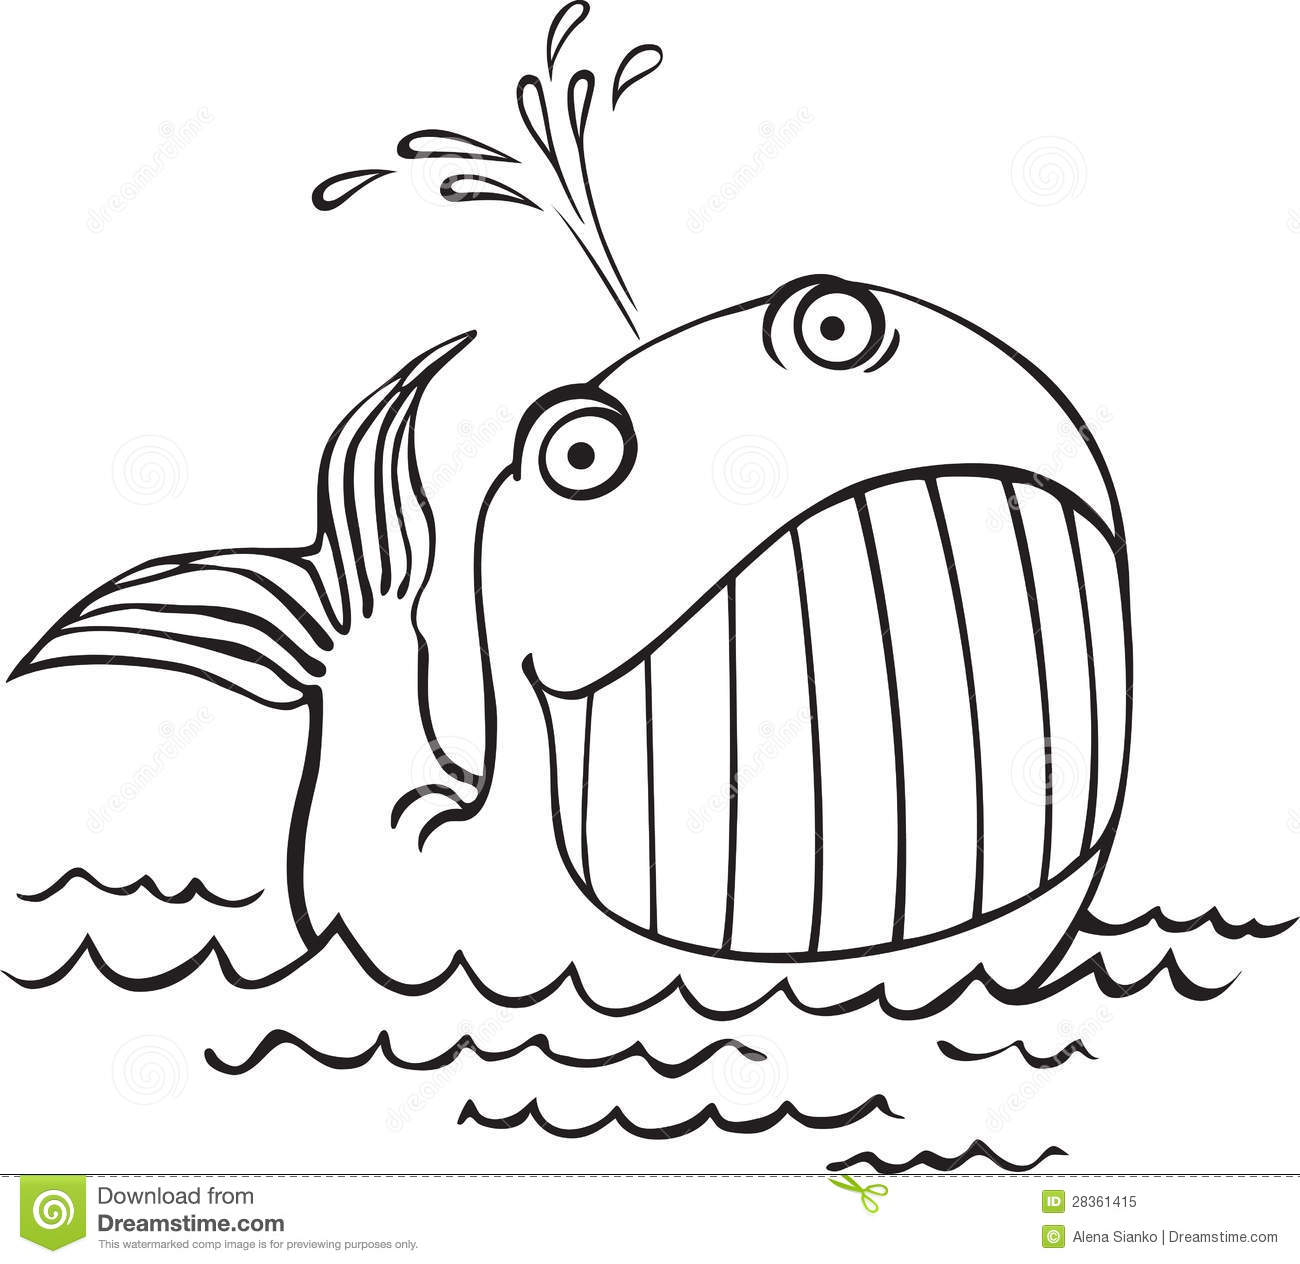 Line Drawing Of Water Animals : Outline drawing of a whale cartoon sea animals royalty